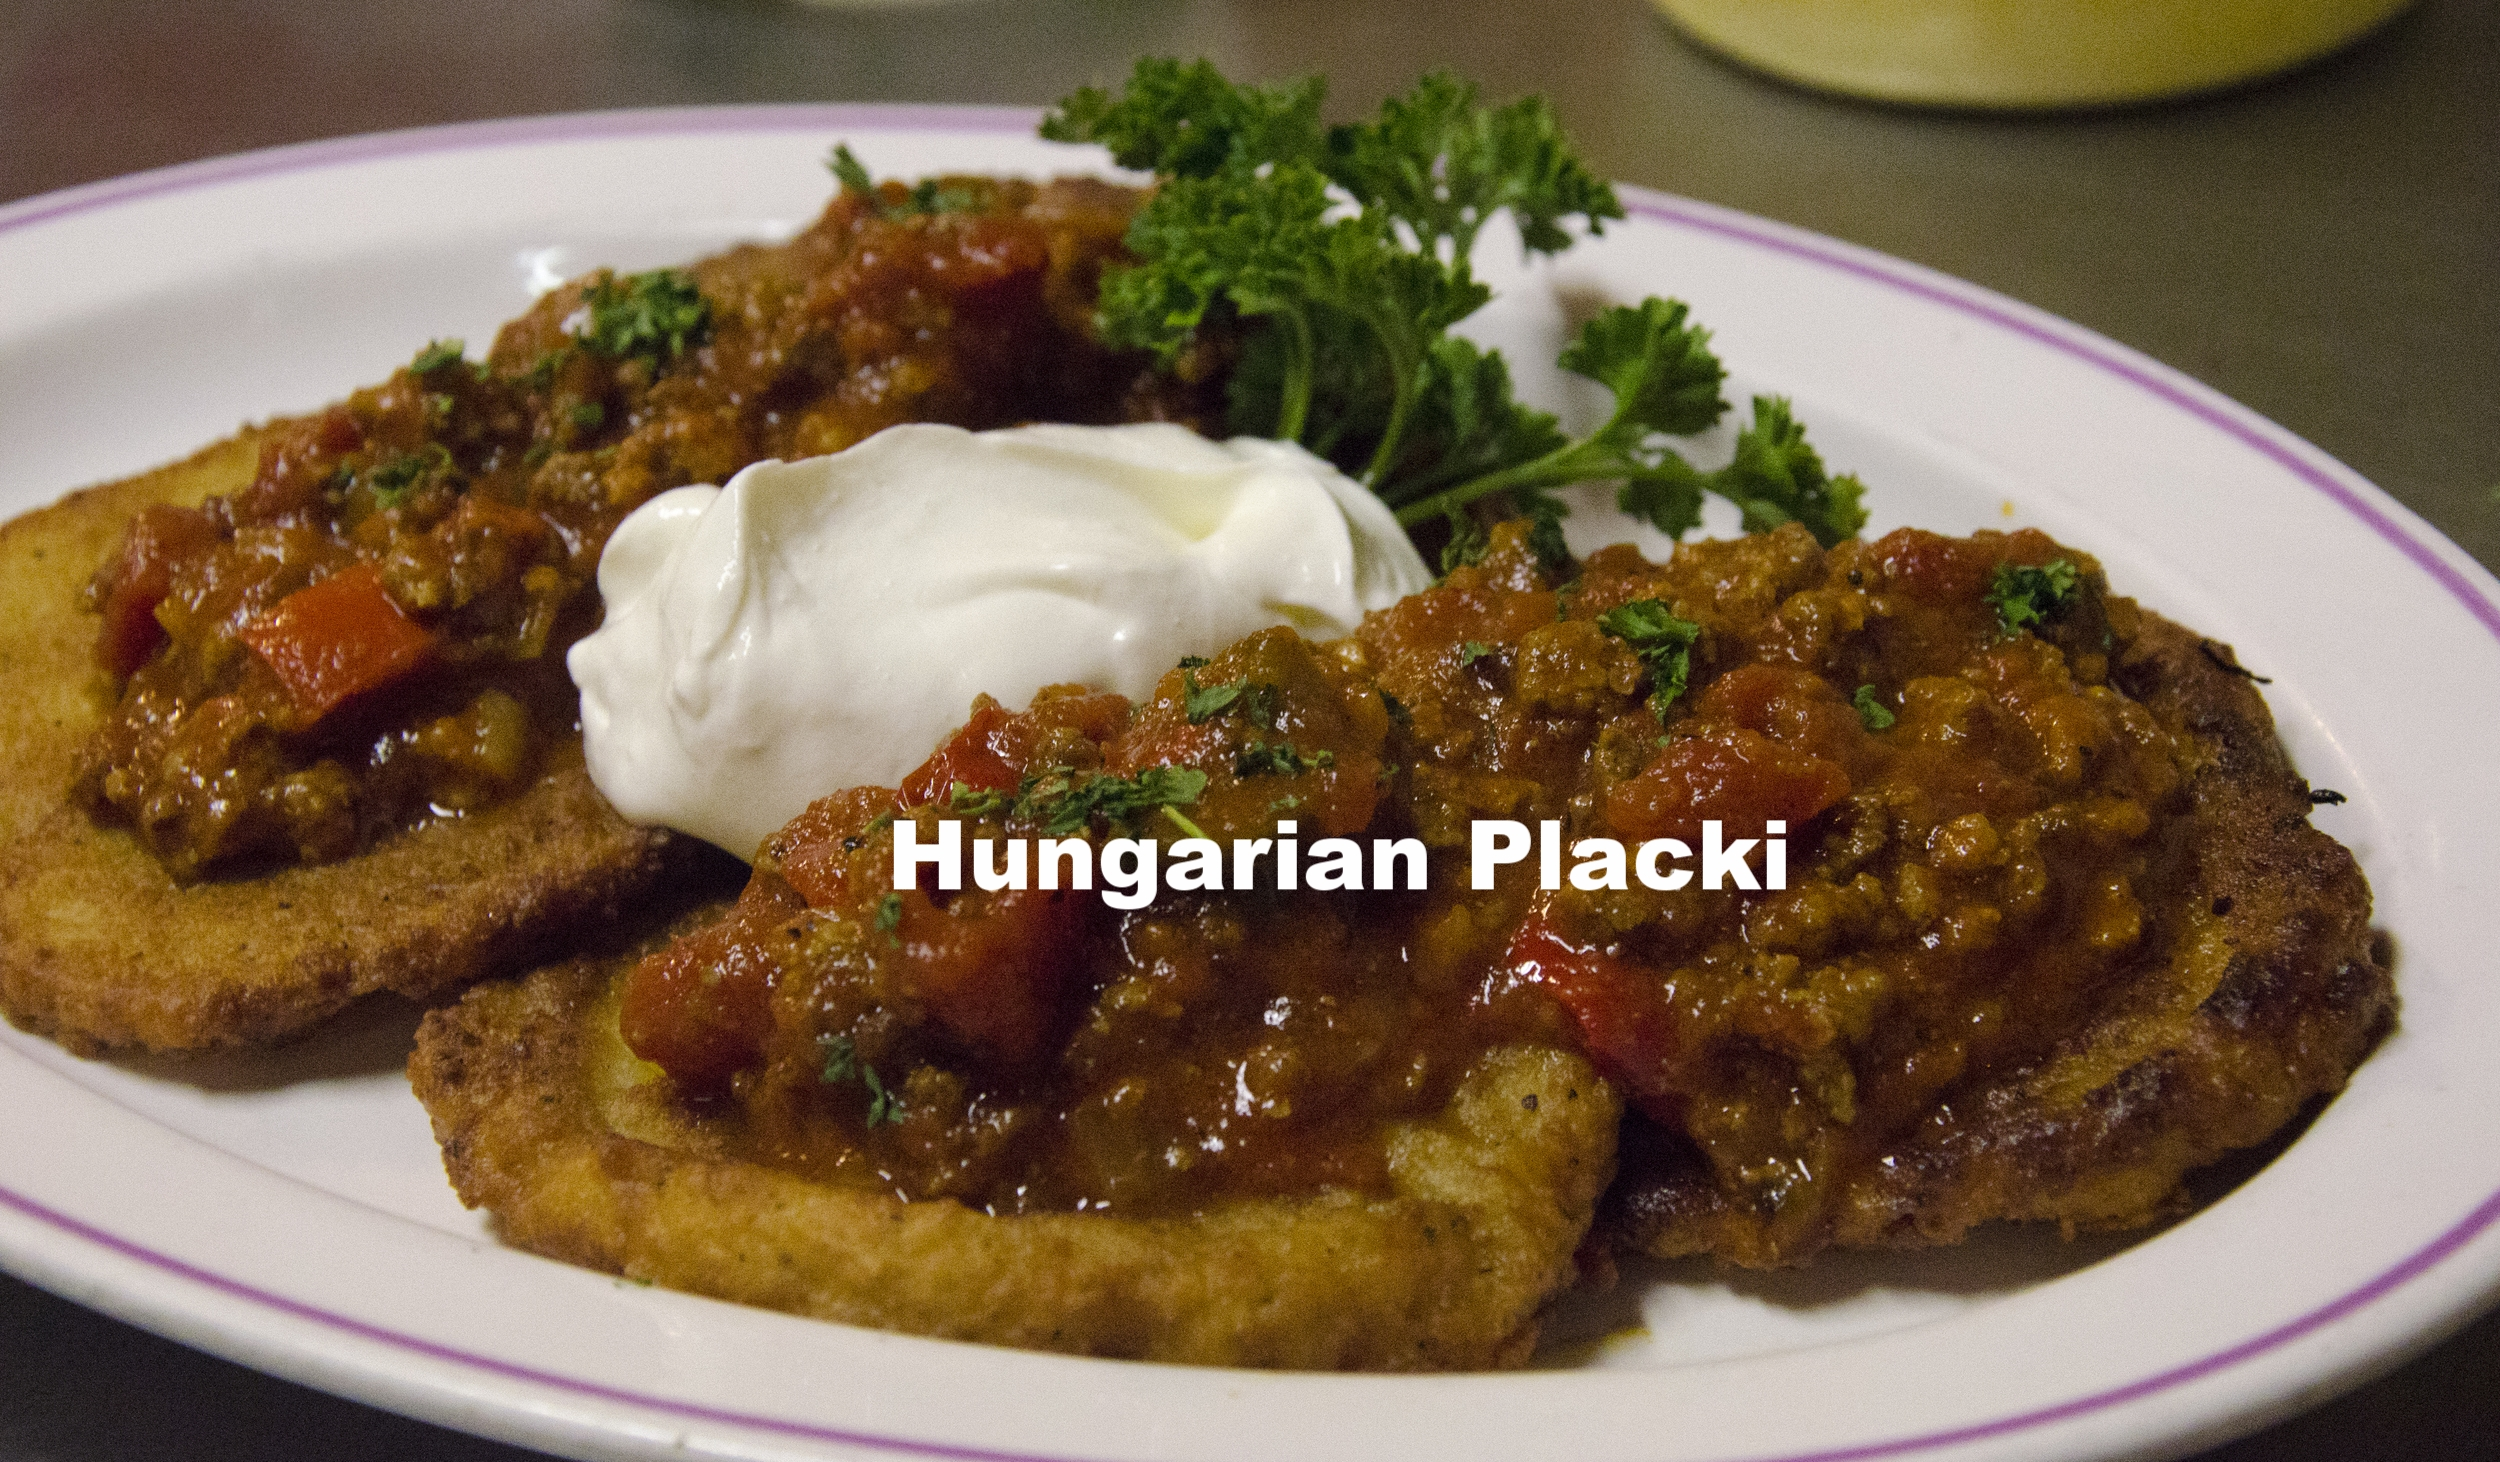 Food - Potato Pancake with Hungarian.jpg